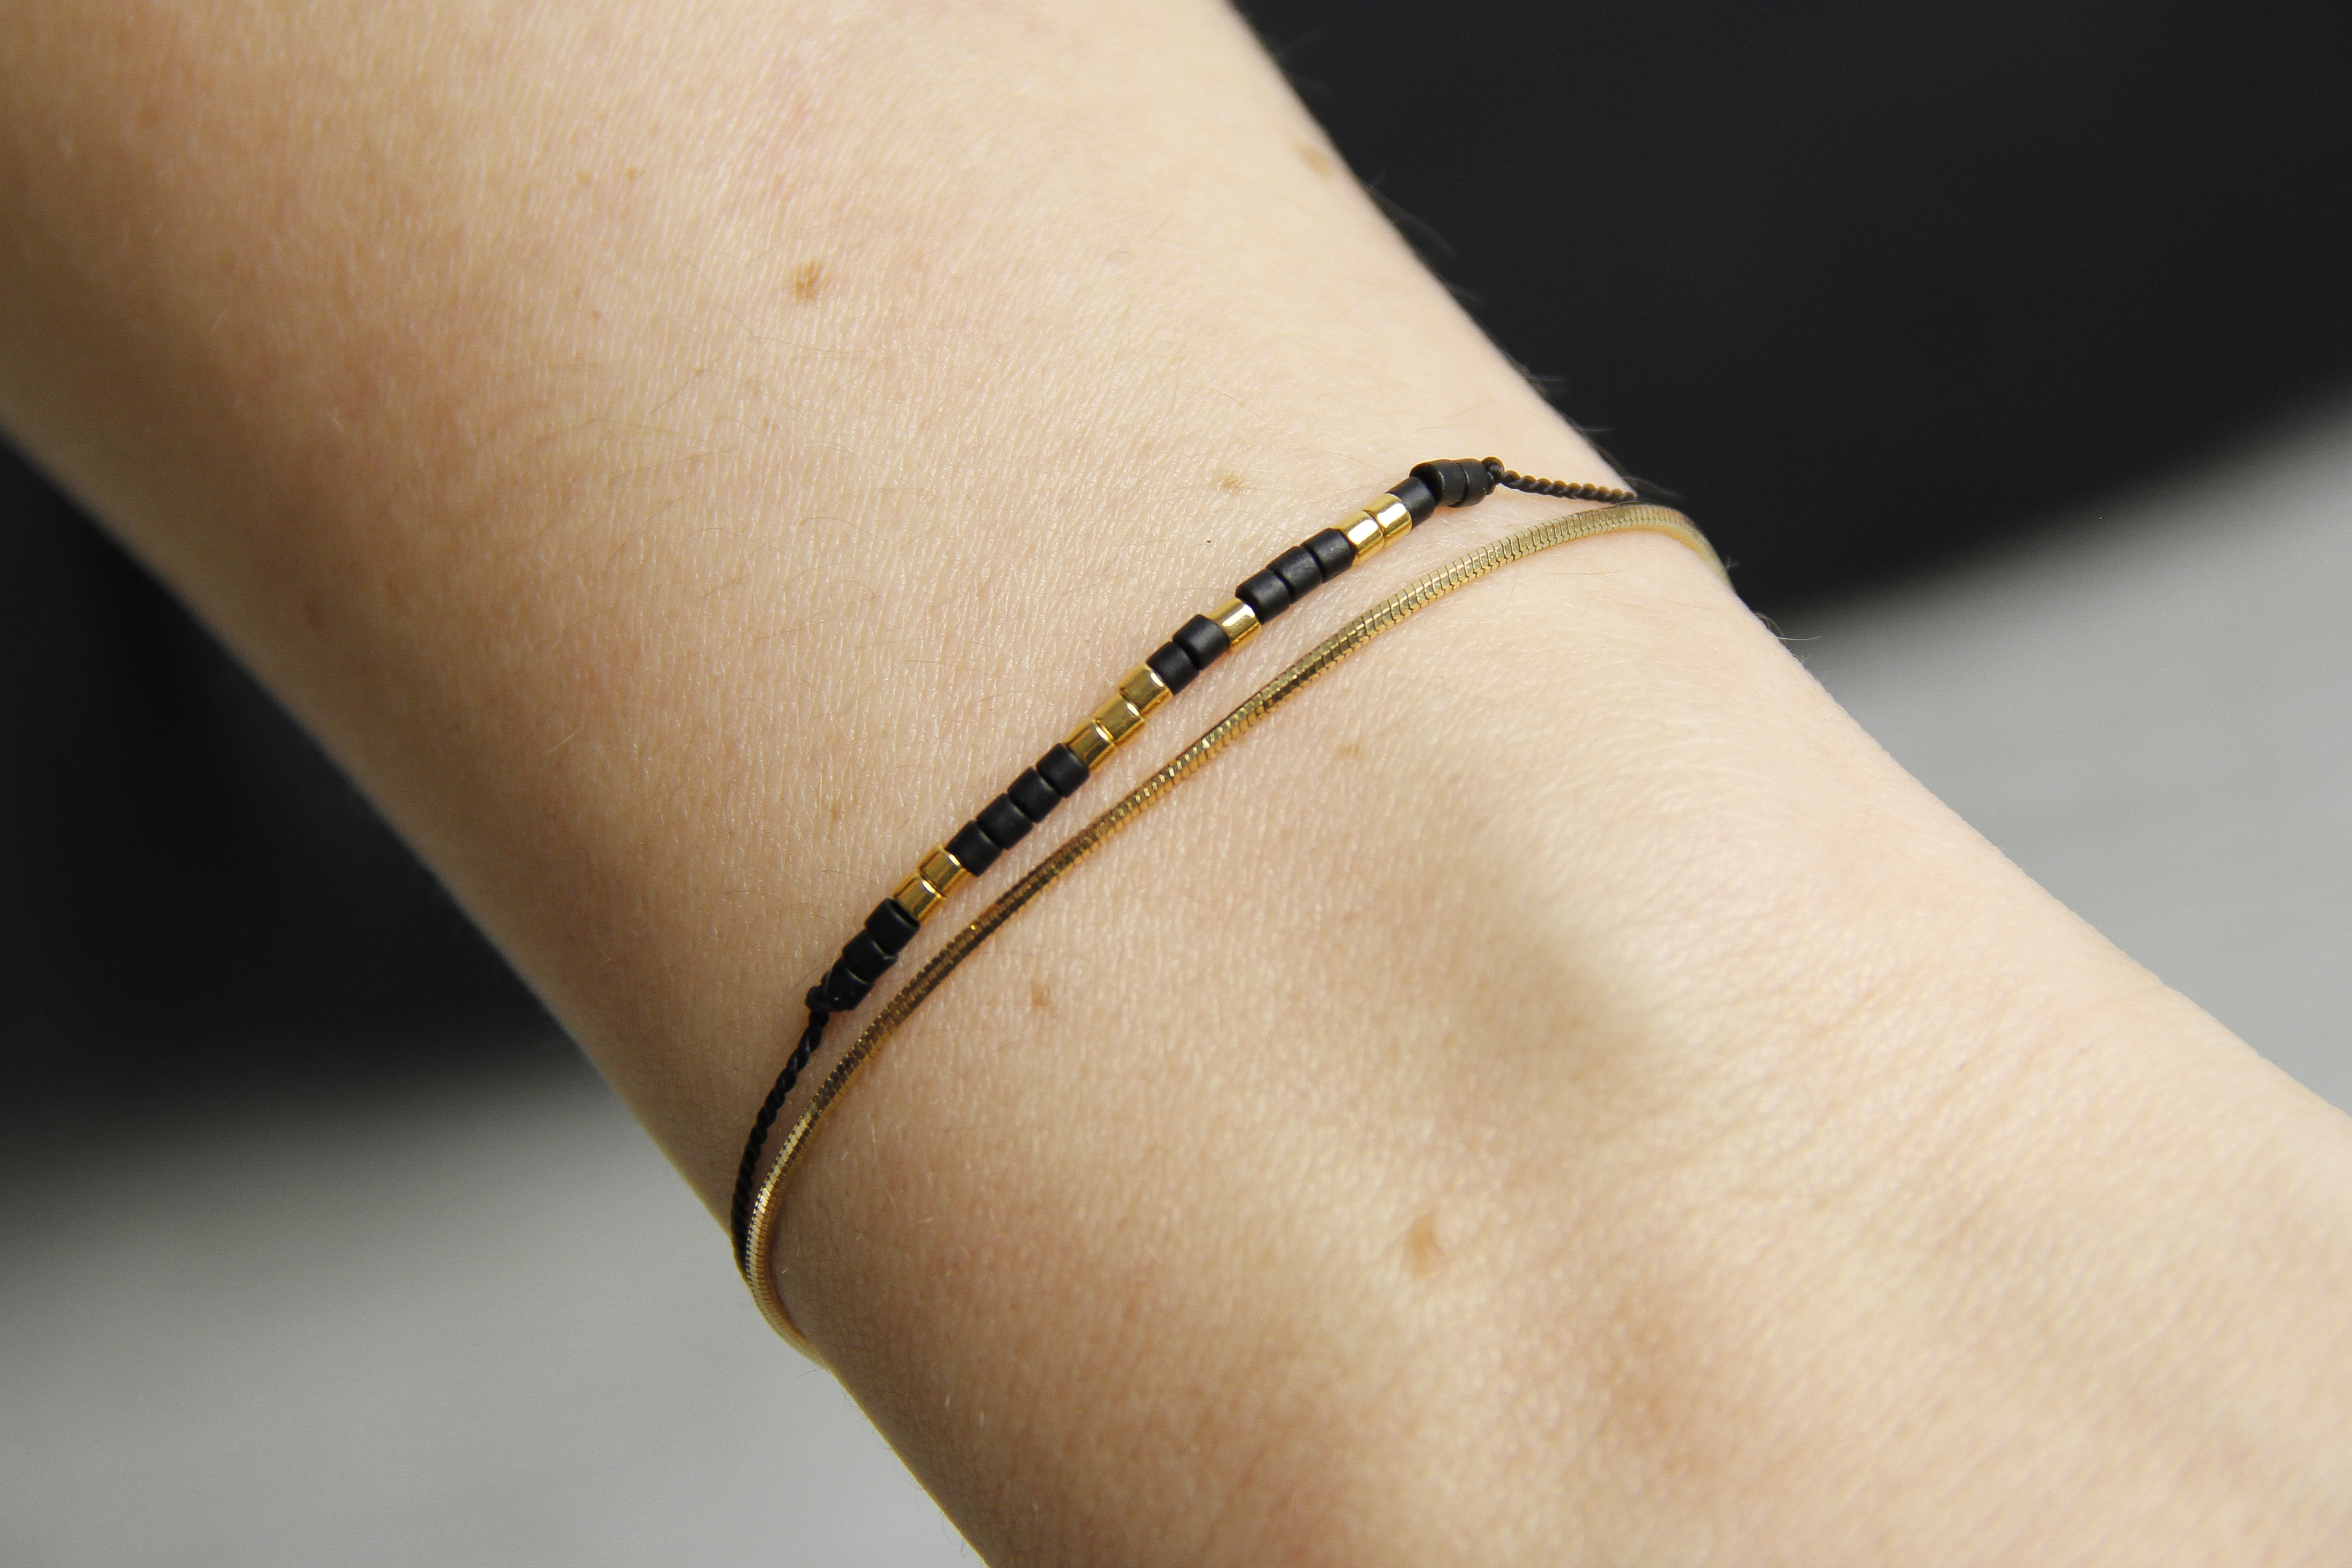 Miyuki Bead 24k Gold-plated Bracelet by State of A